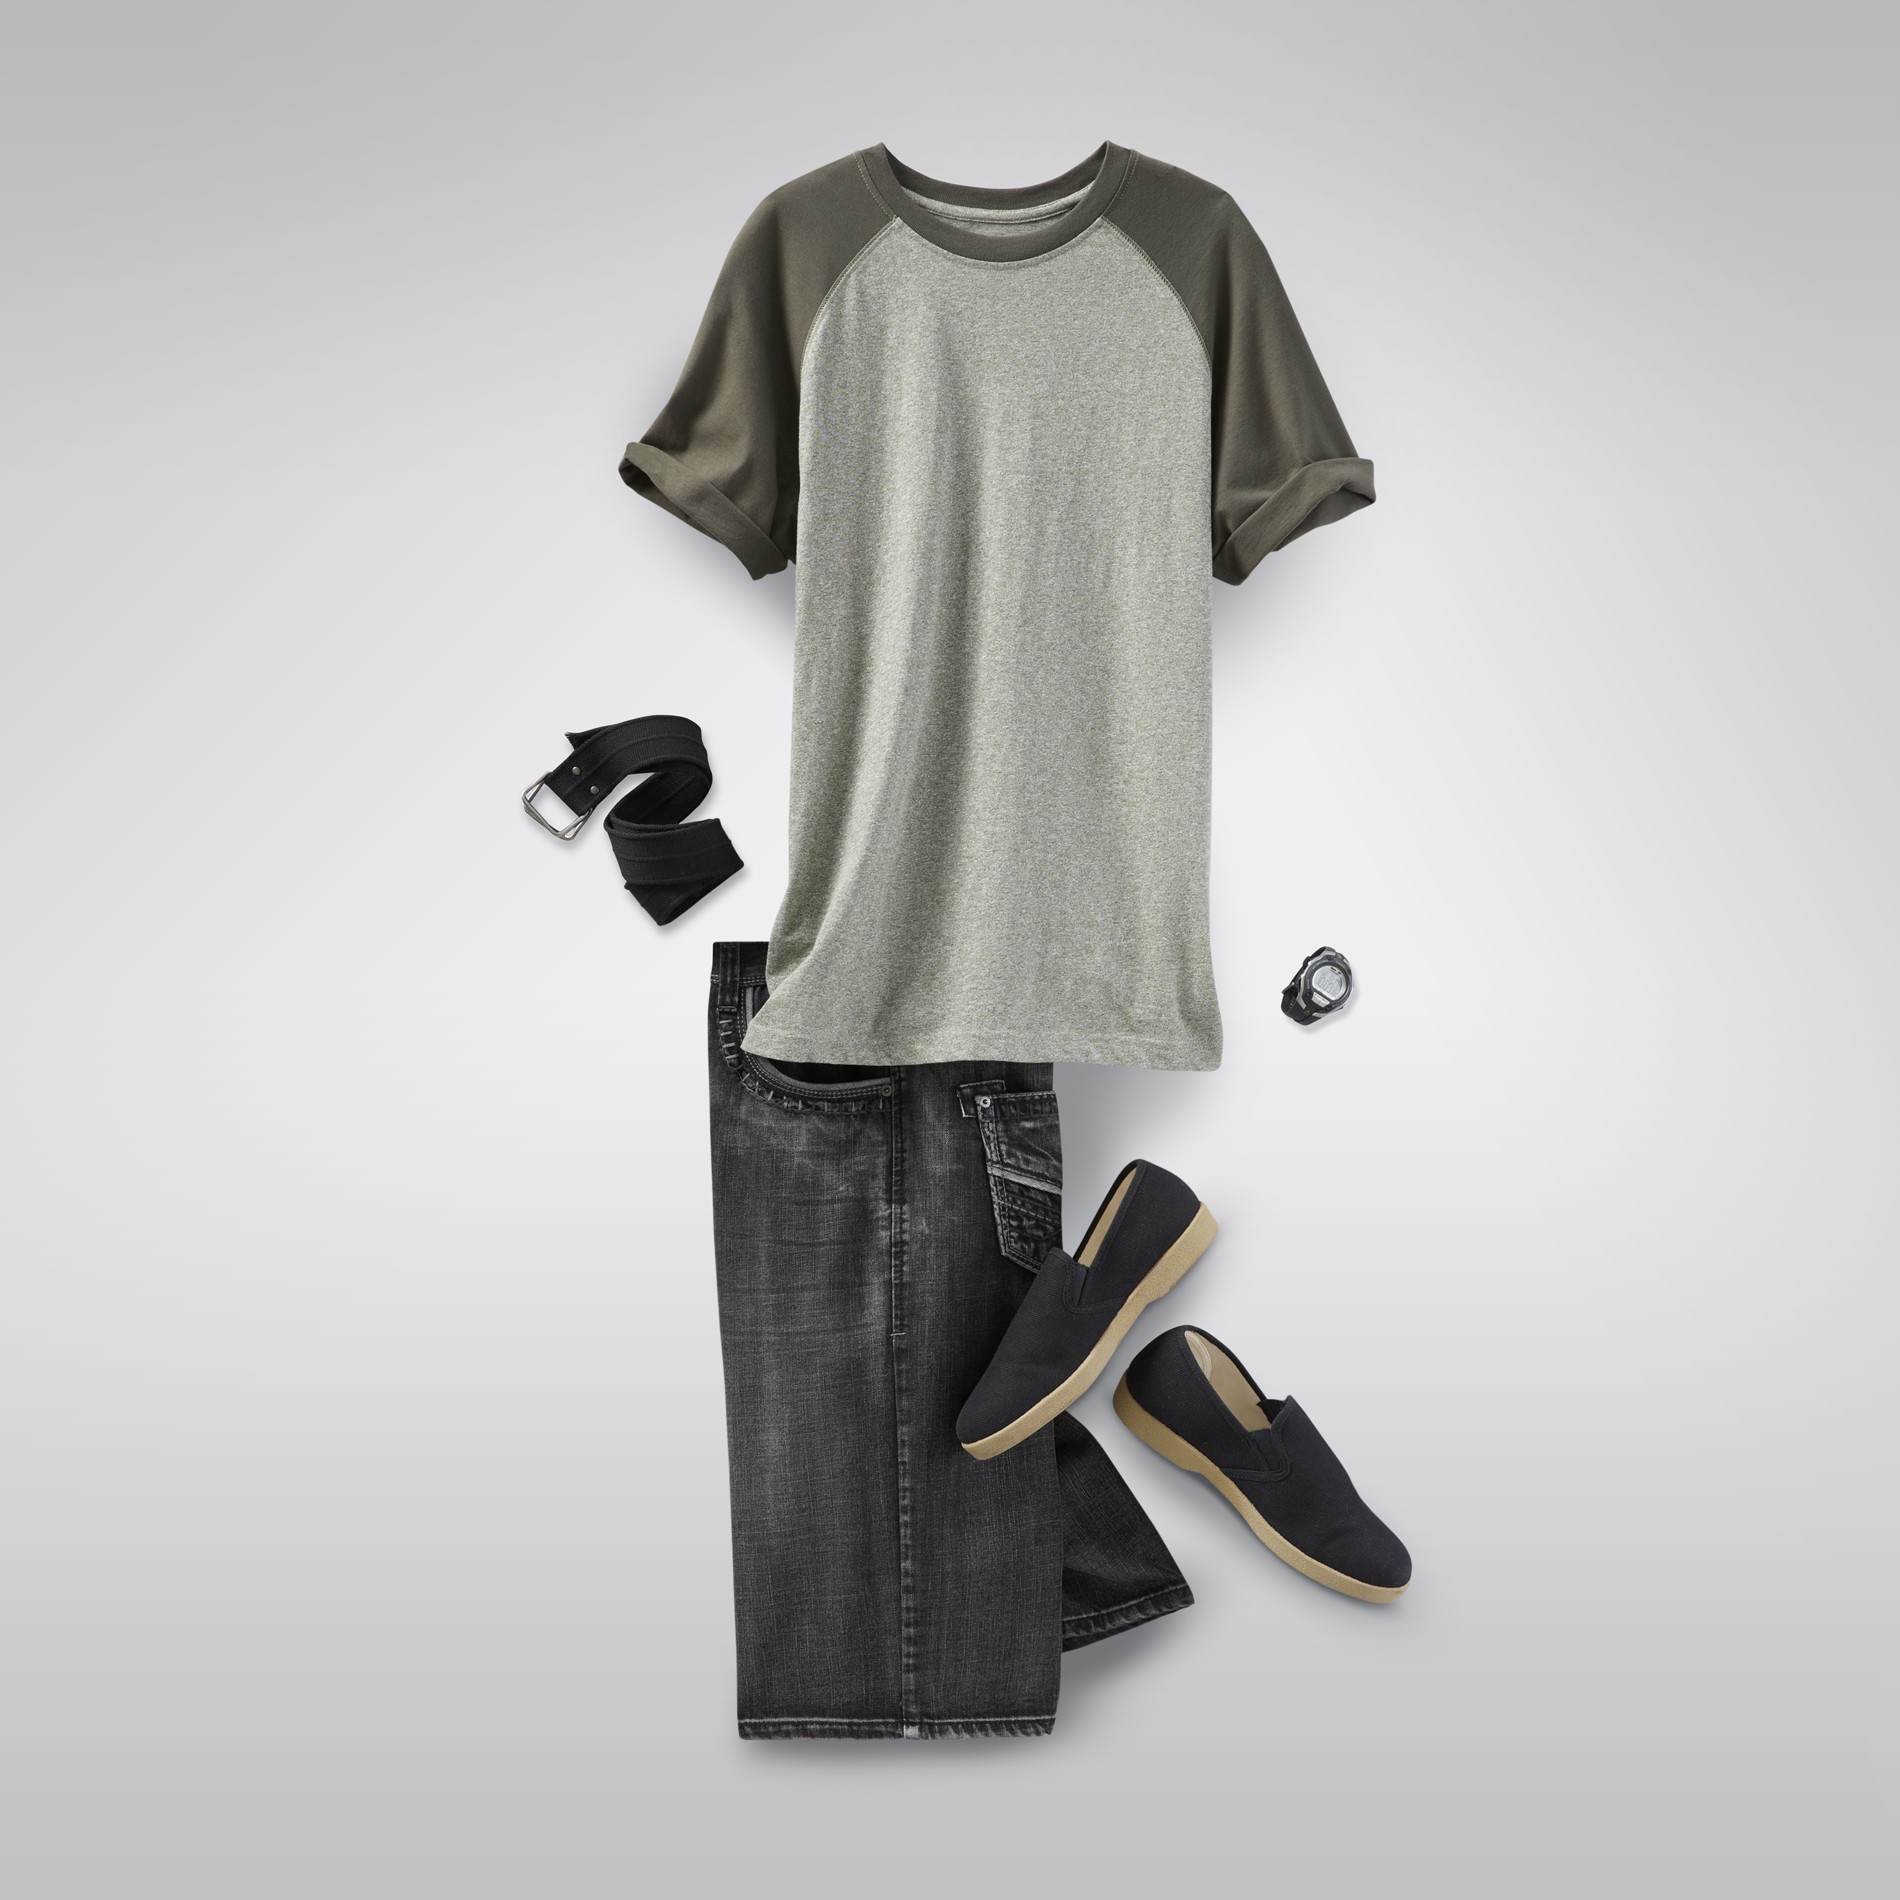 Daily Duds Outfit at Kmart.com